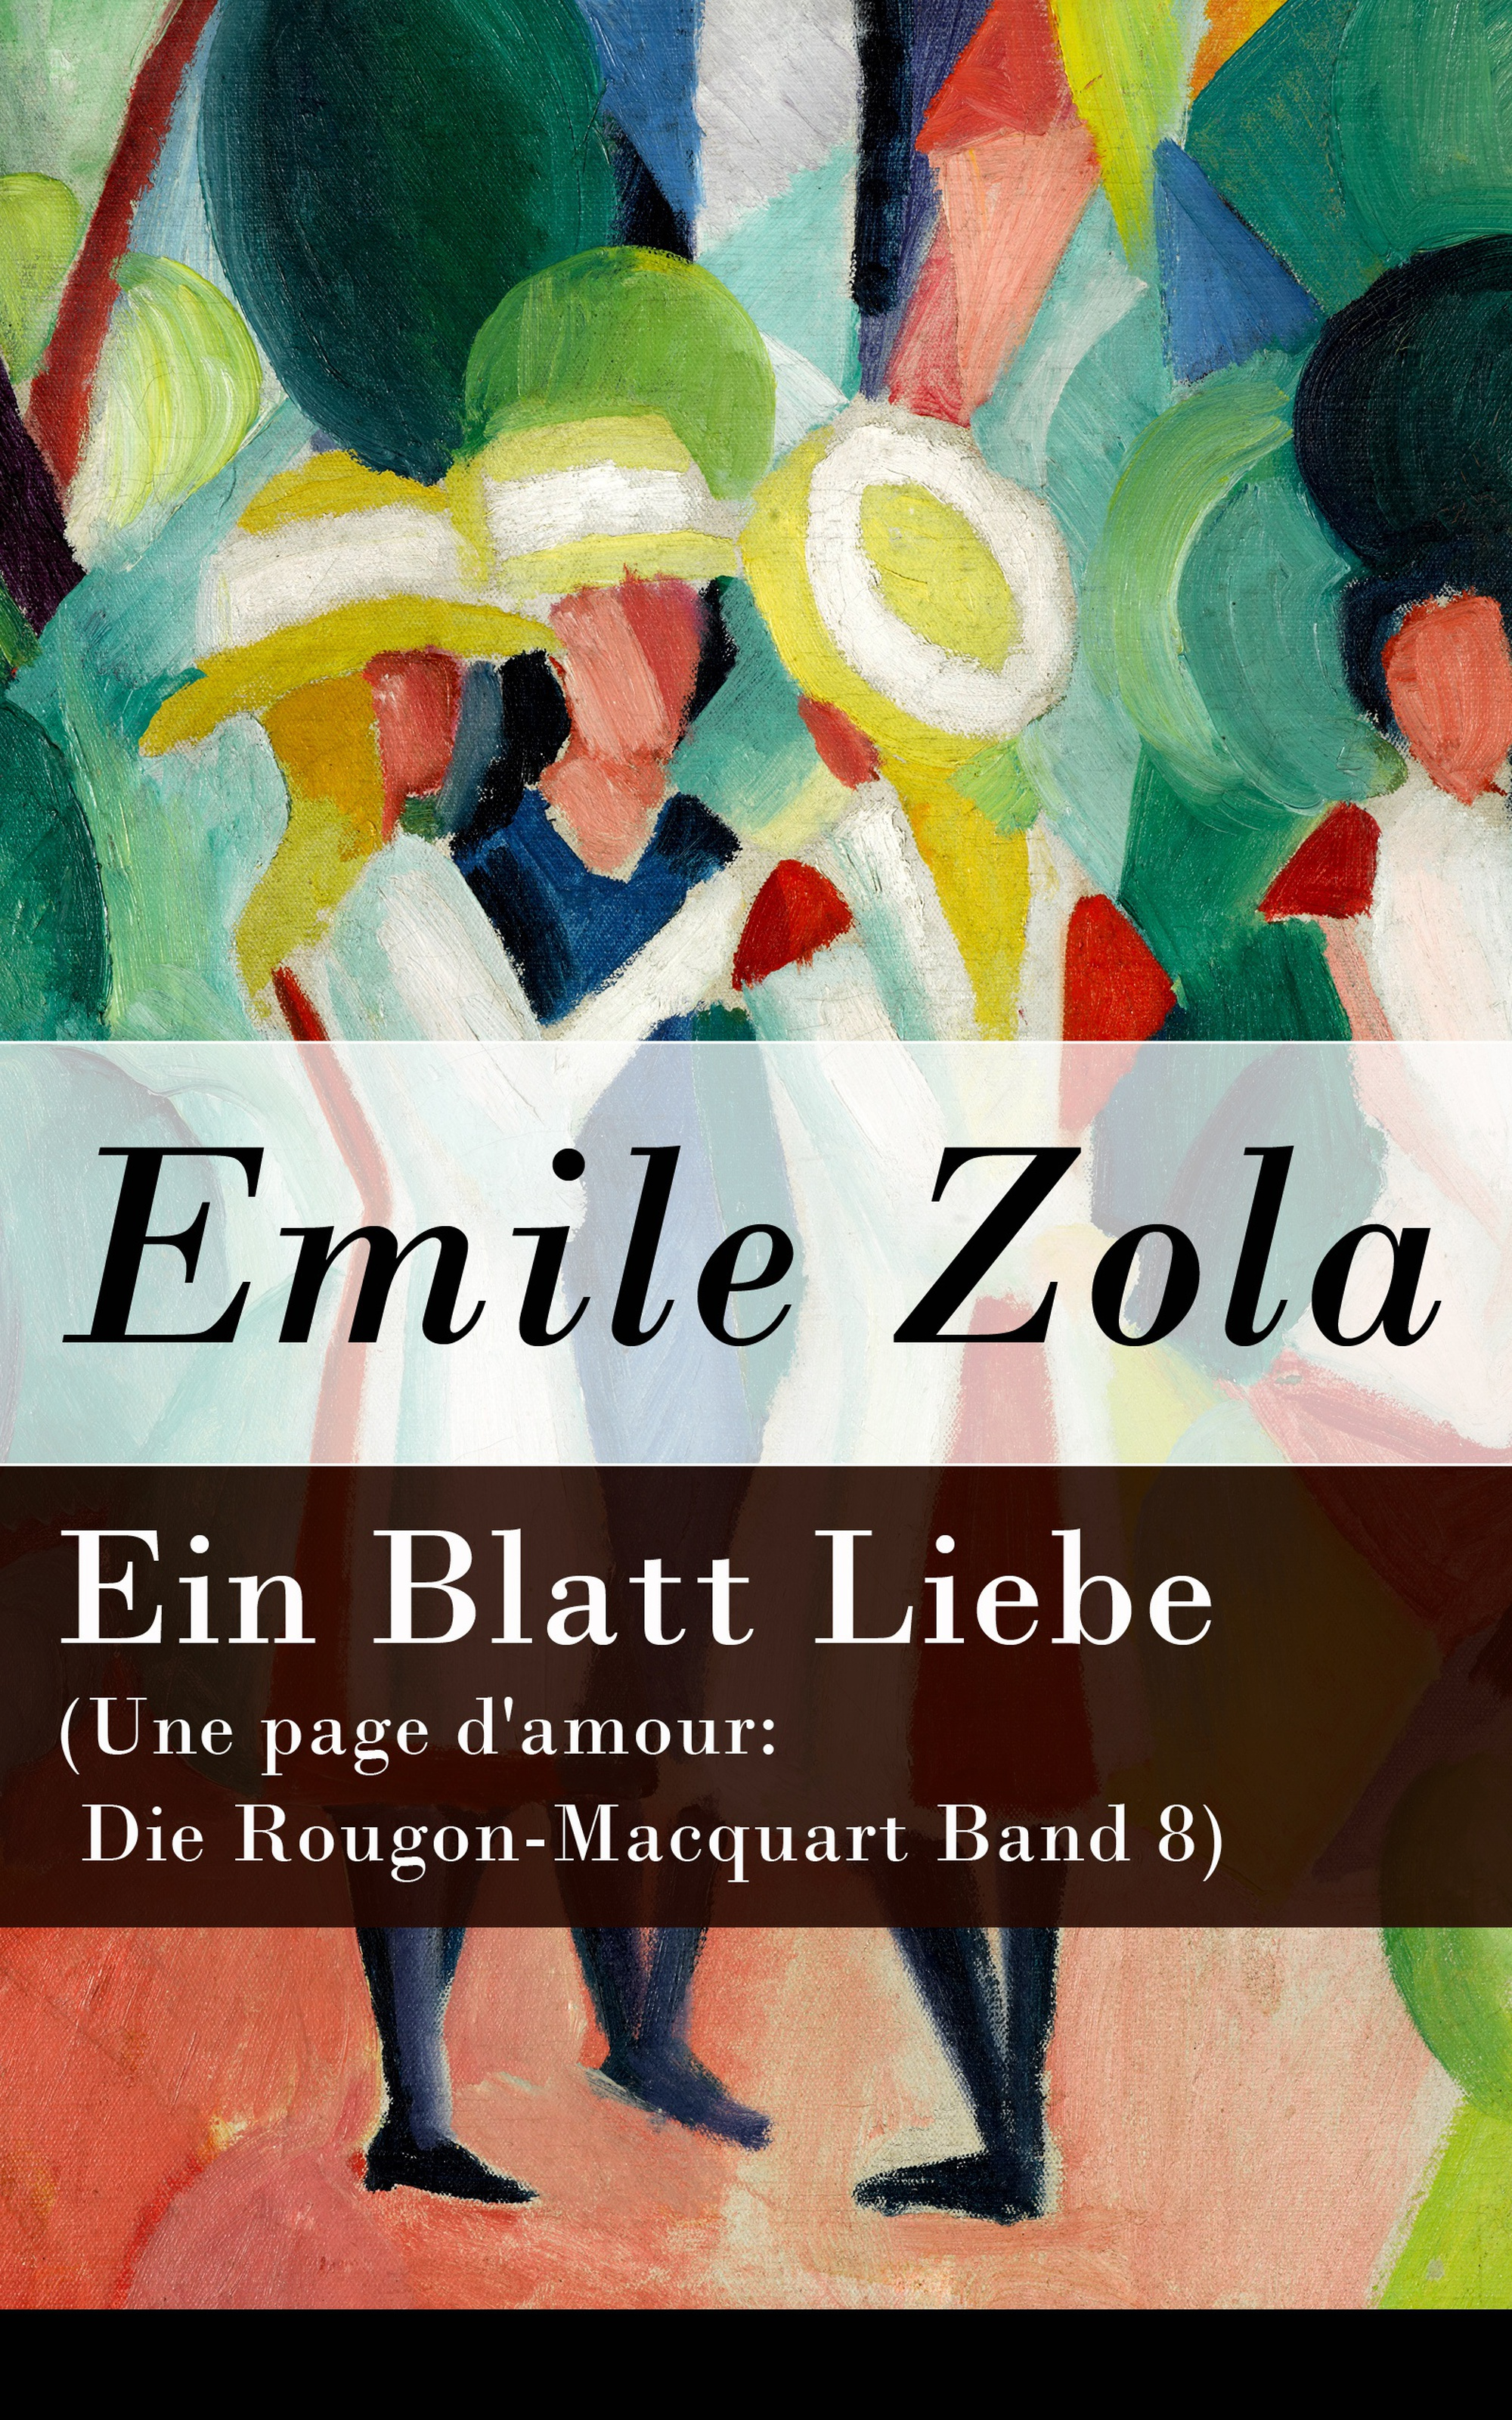 Emile Zola Ein Blatt Liebe (Une page d'amour: Die Rougon-Macquart Band 8) officially dead page 8